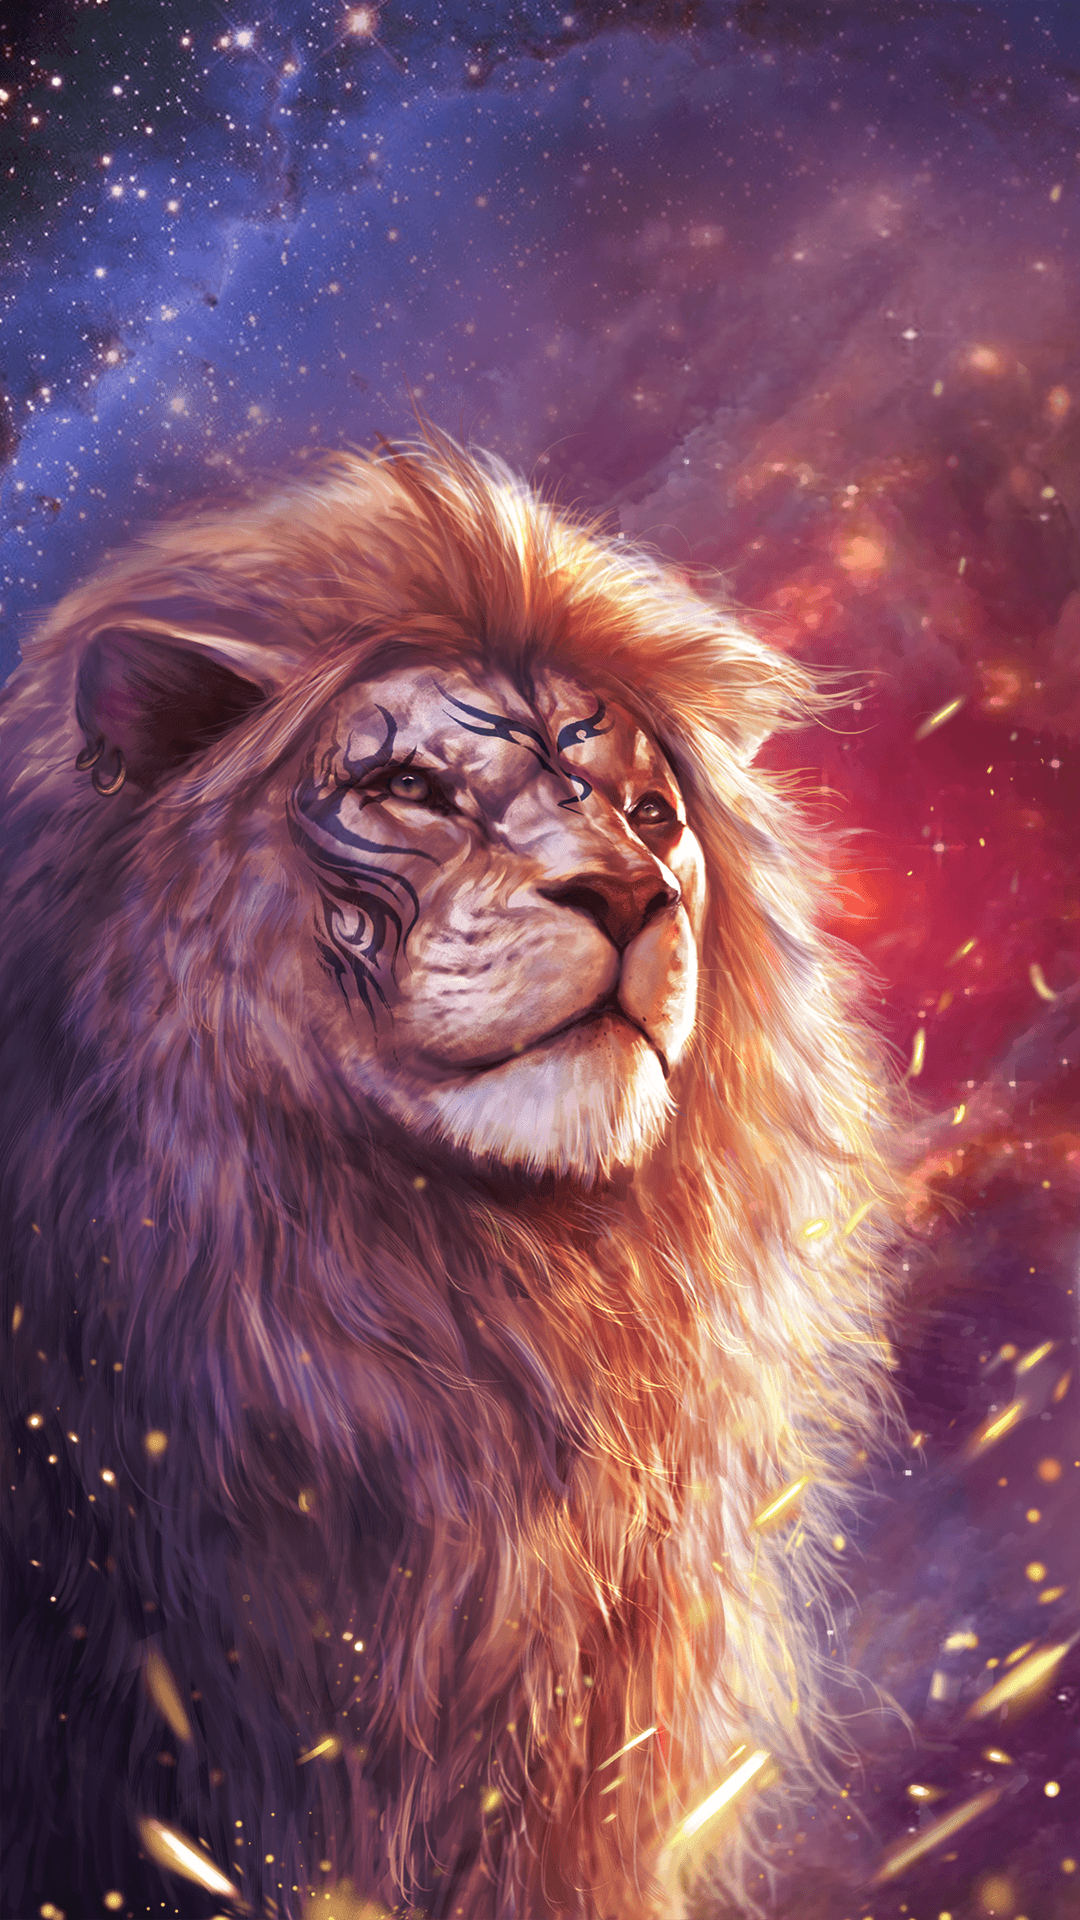 Lion Iphone Android Iphone Desktop Hd Backgrounds Wallpapers 1080p 4k In 2020 Lion Pictures Lion Wallpaper Lion Art